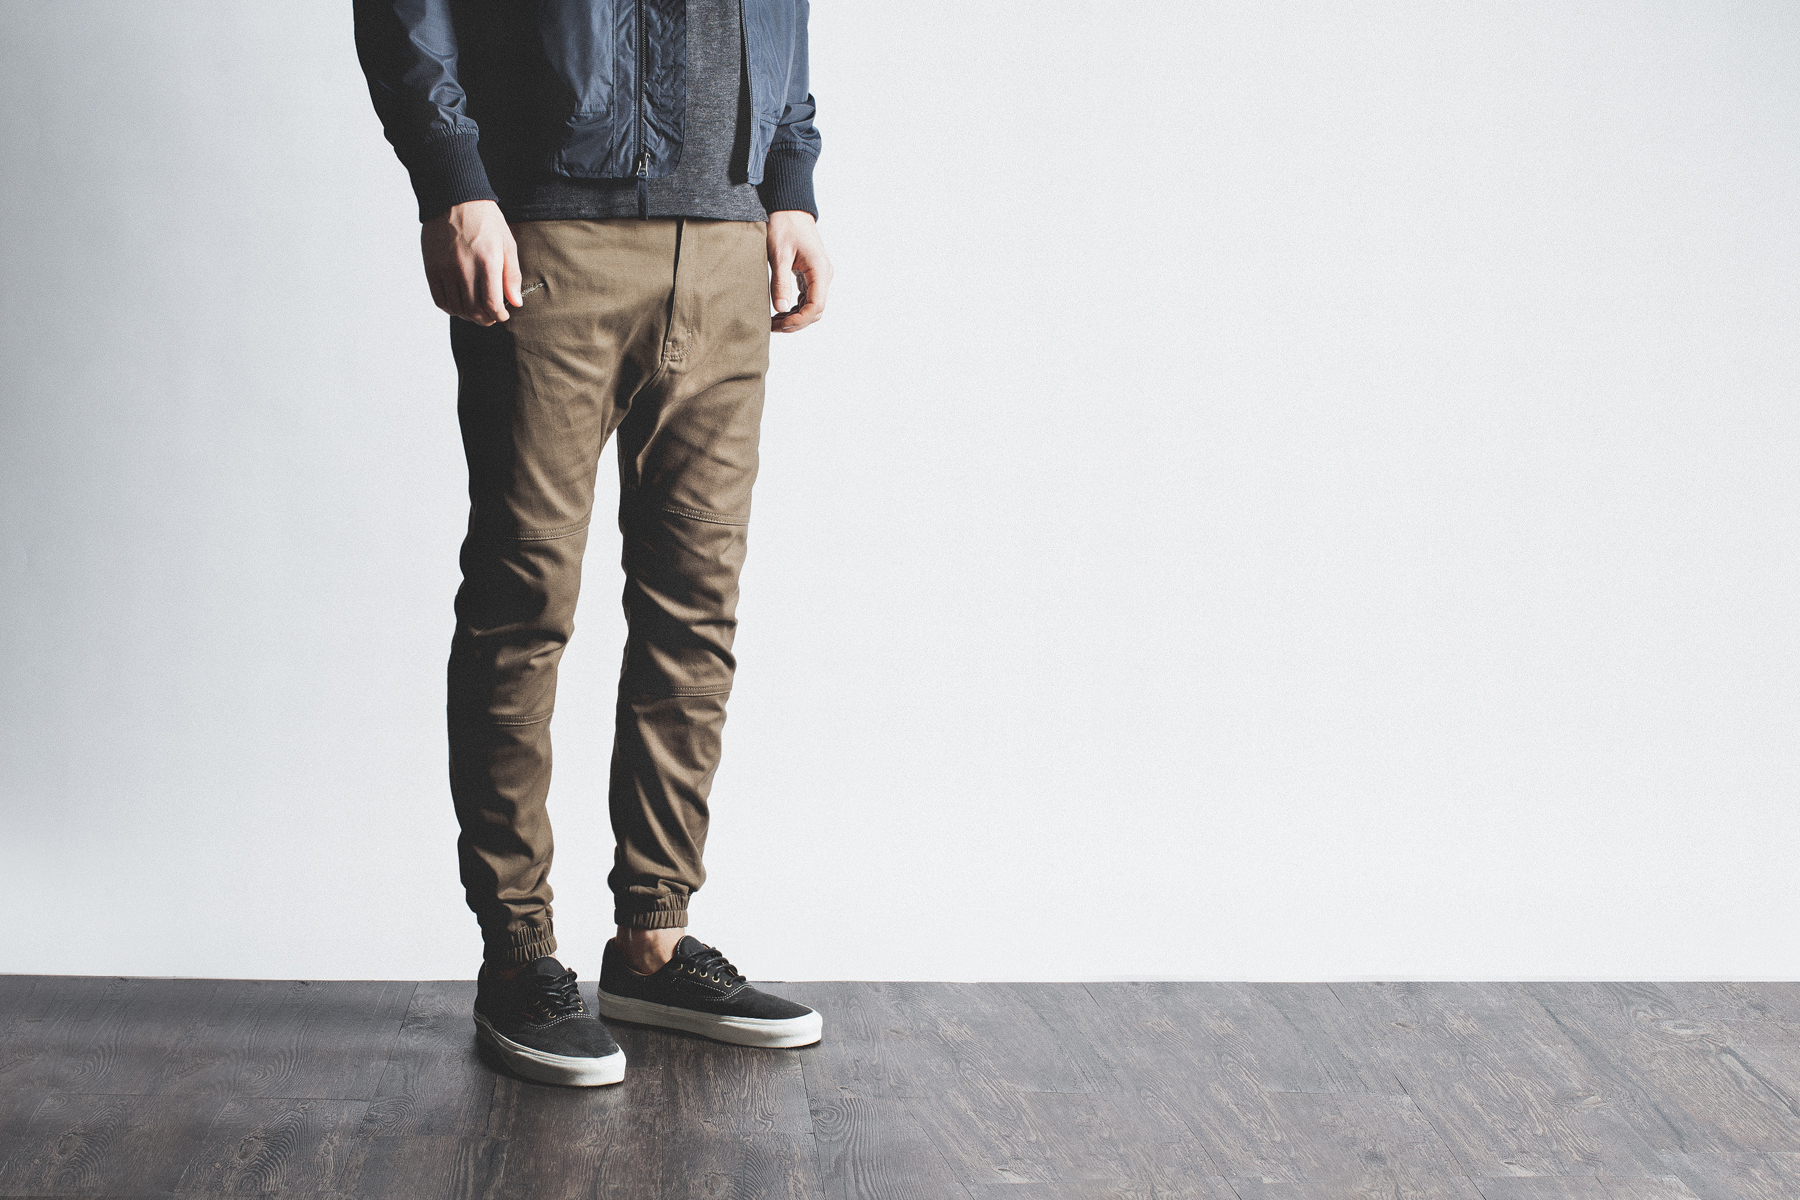 Well, jogger pants can be categorized as any pair of pants that feature elastic cuffs at the ankle. Explore our selection from top brands to see everything from classic sweatpants styles to cargo and denim options for both men and women.